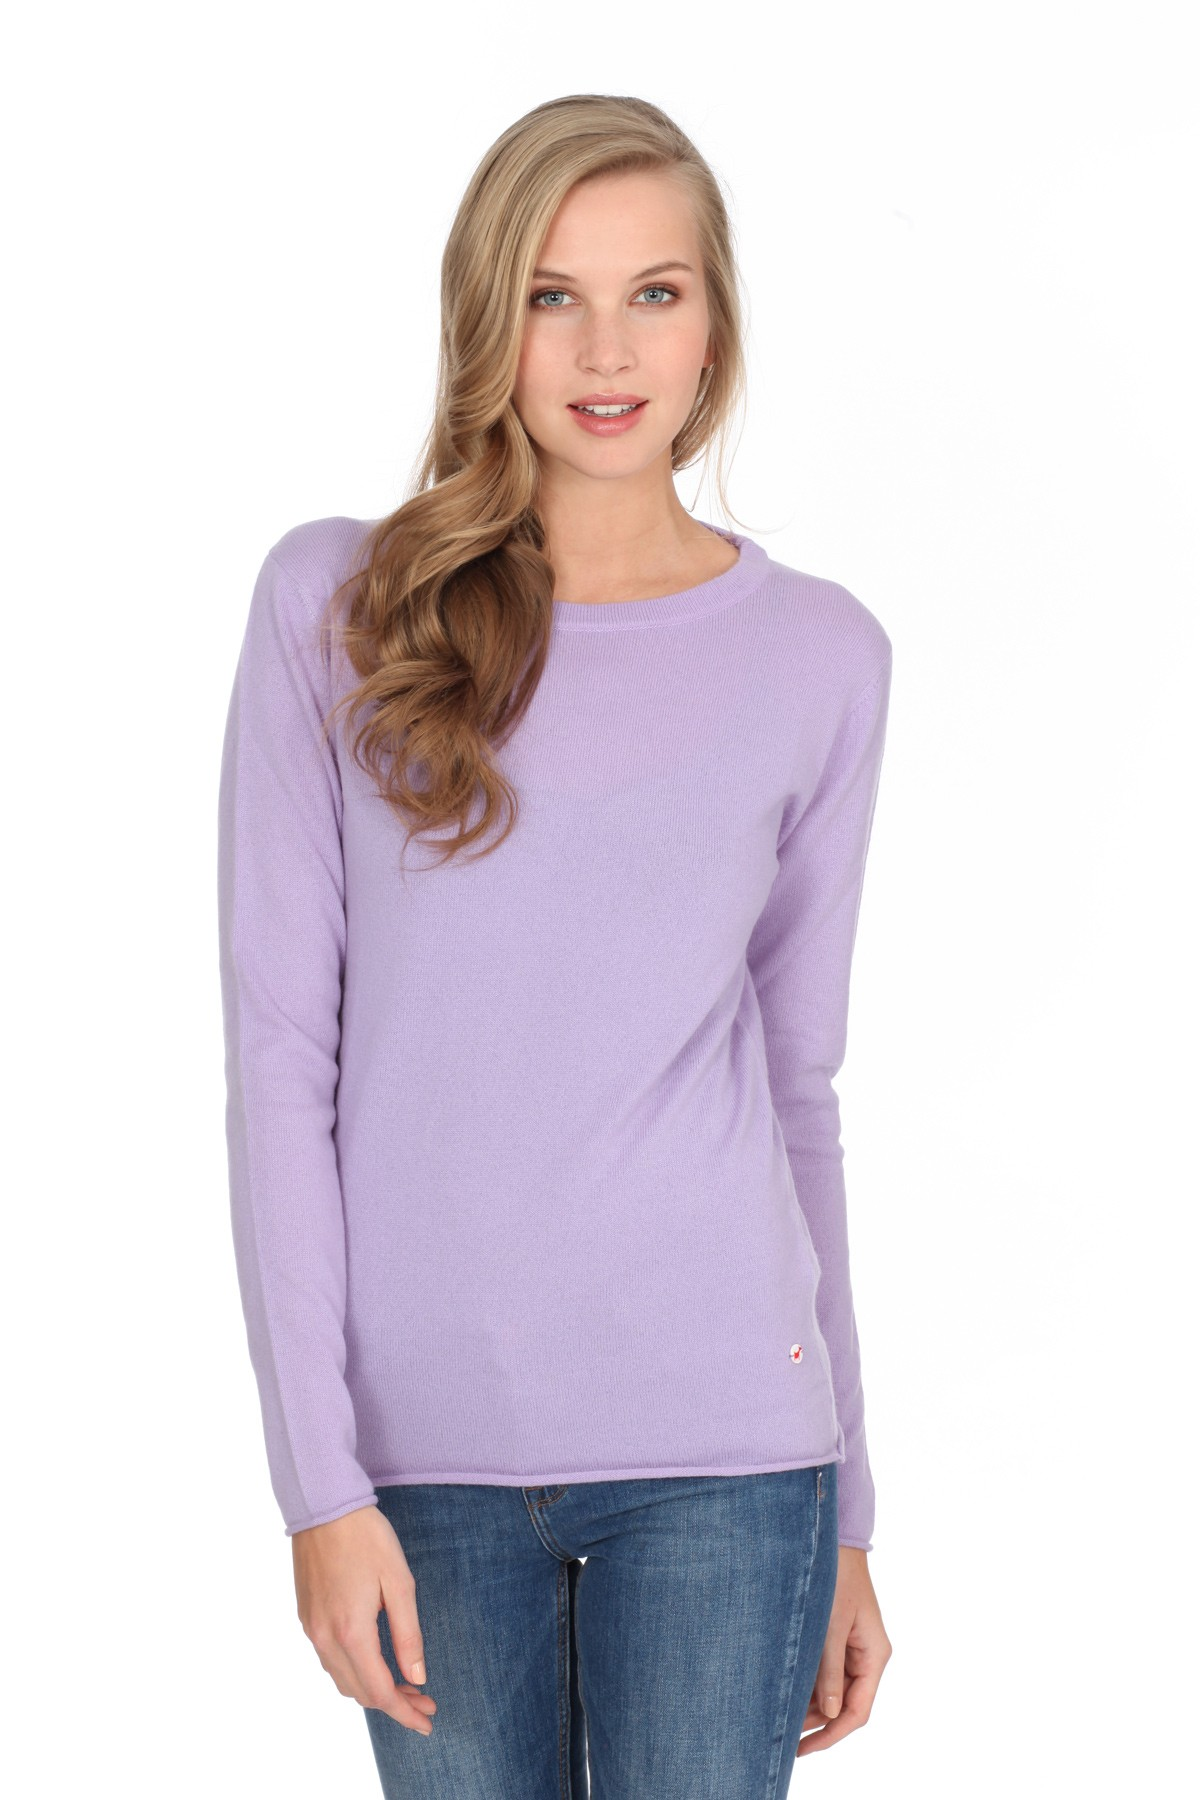 Women's long sleeve cashmere top lilac